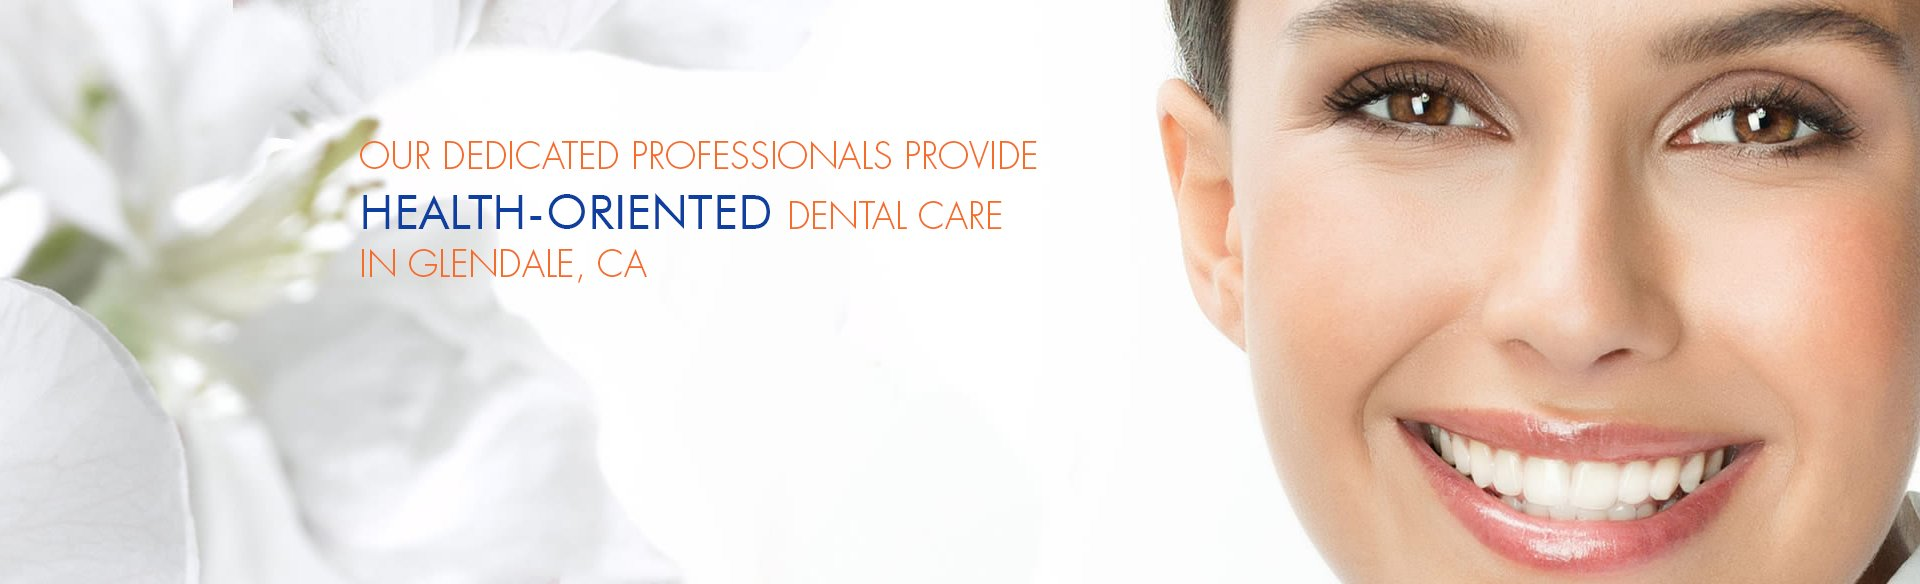 Our Dedicated Professionals Provide health-Oriented Dental Care